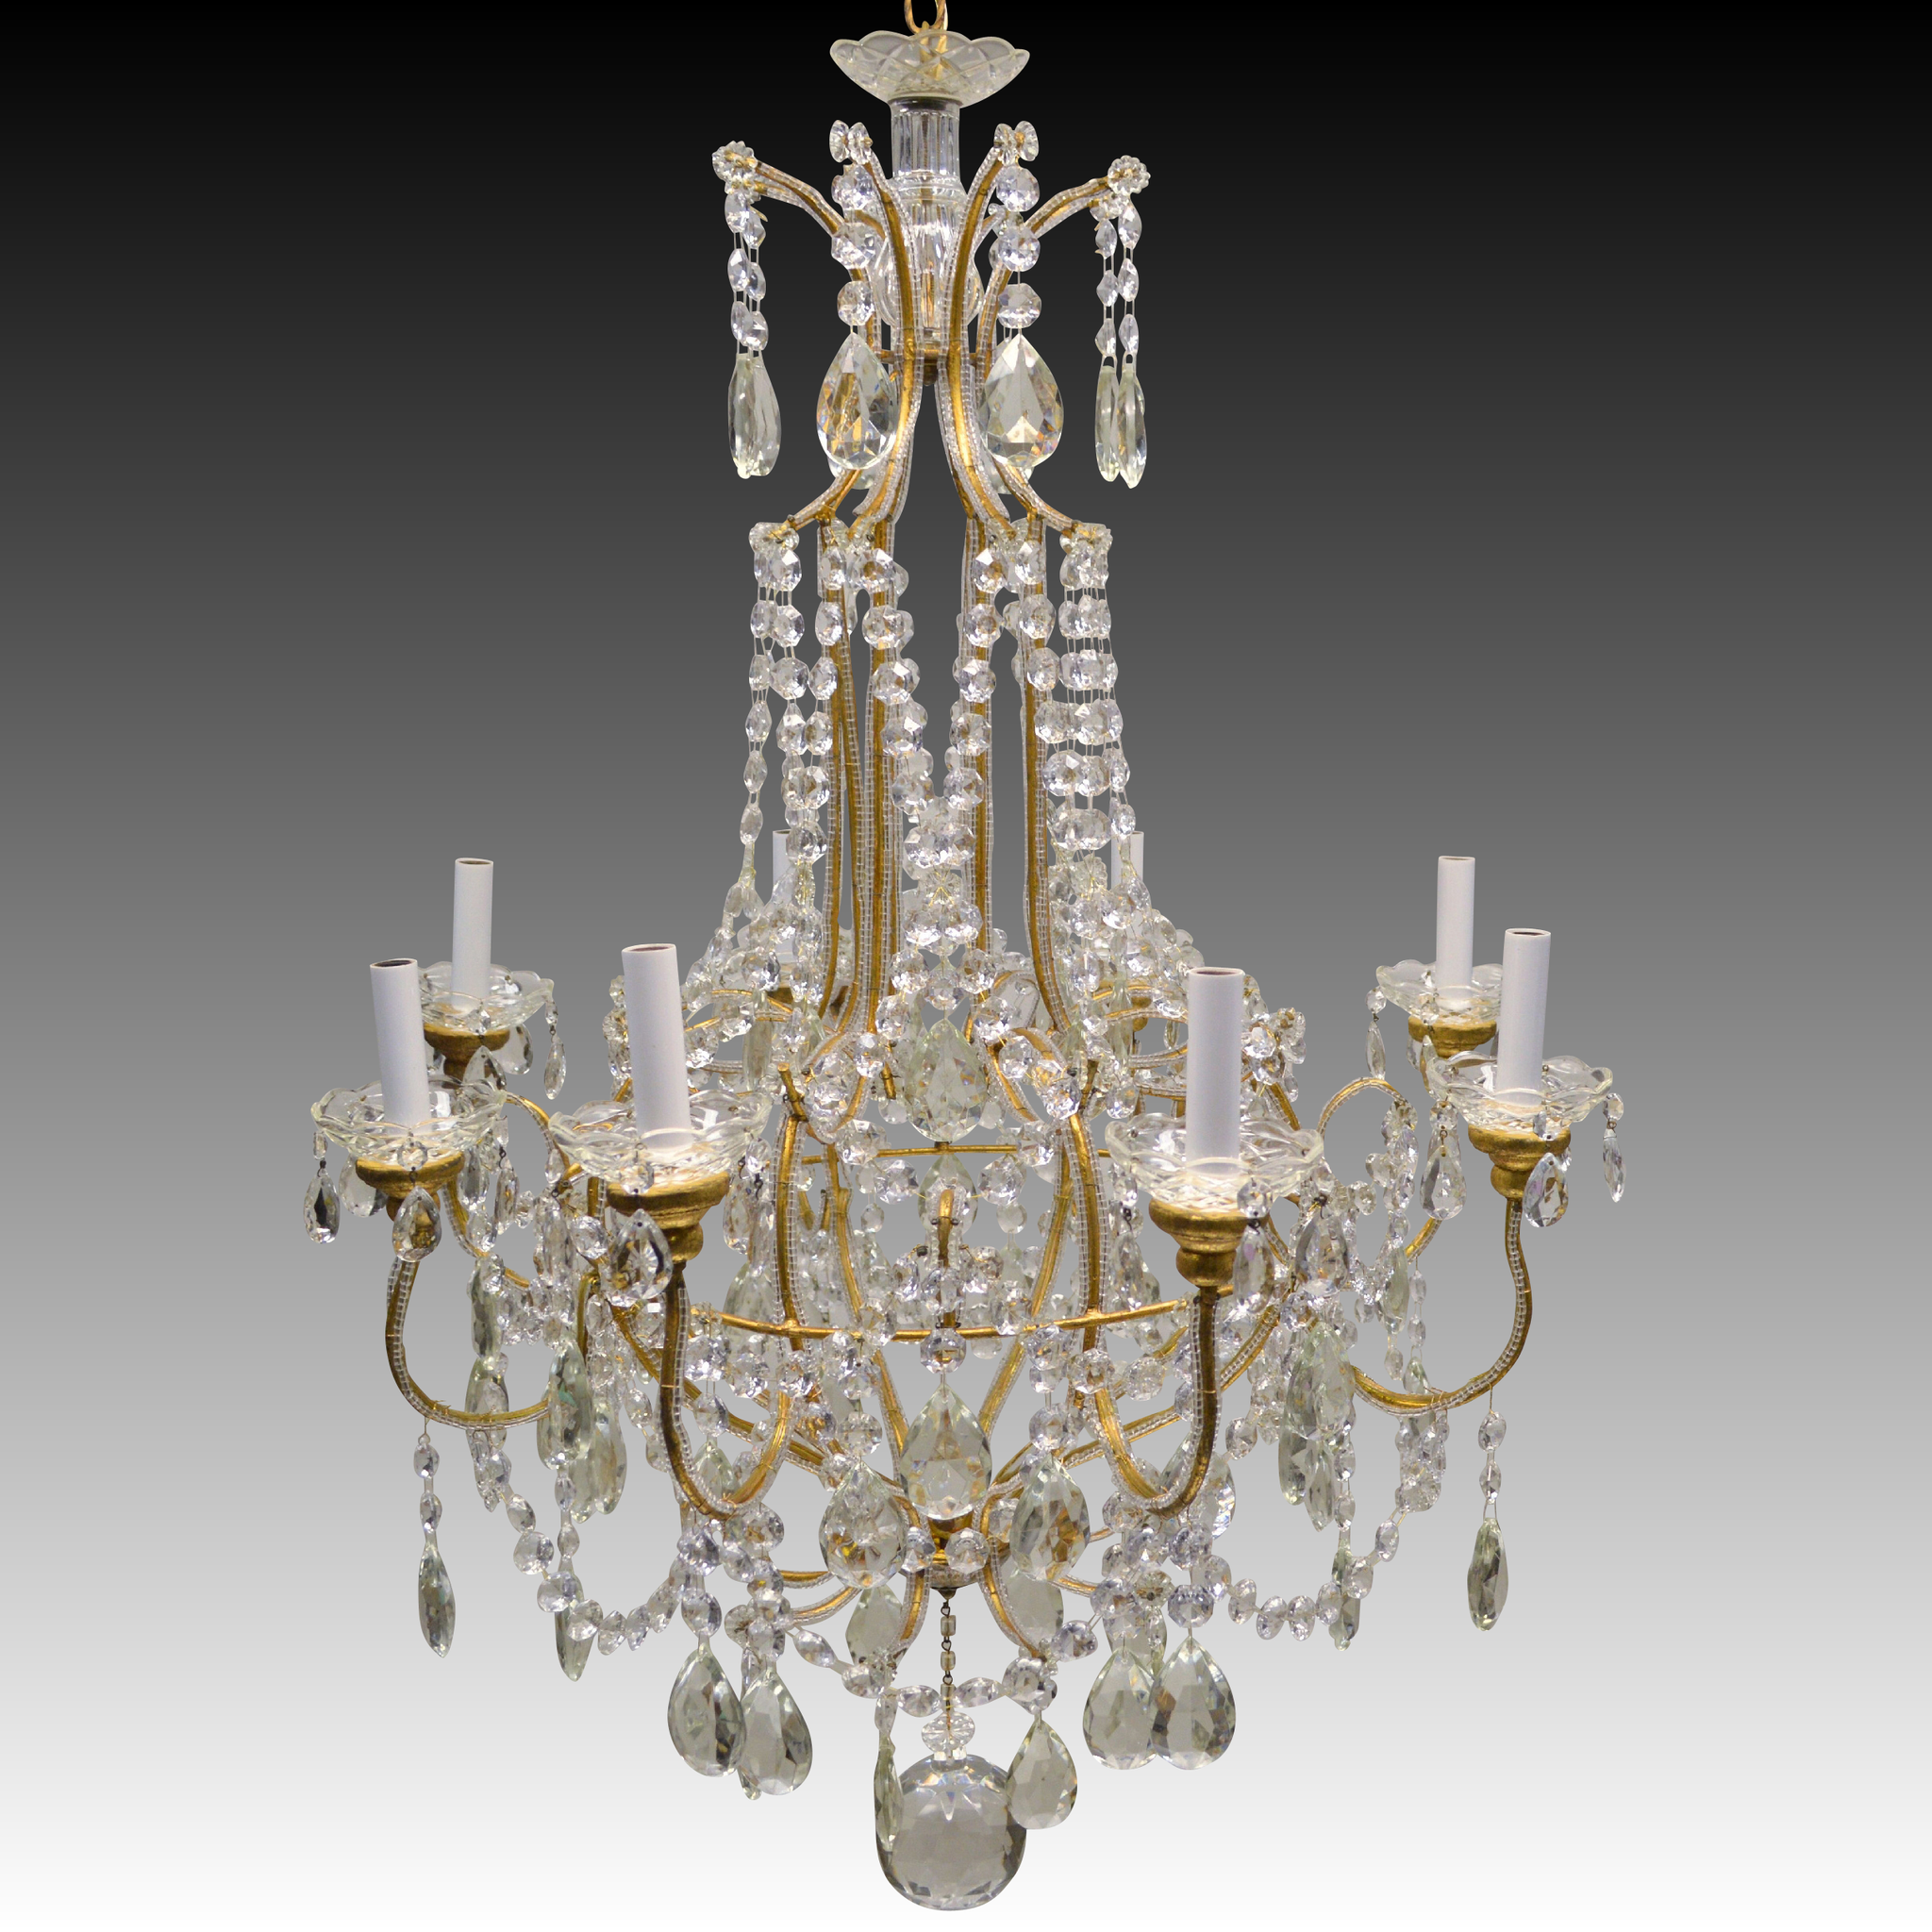 8 Light Crystal Chandelier: Roll over Large image to magnify, click Large image to zoom,Lighting